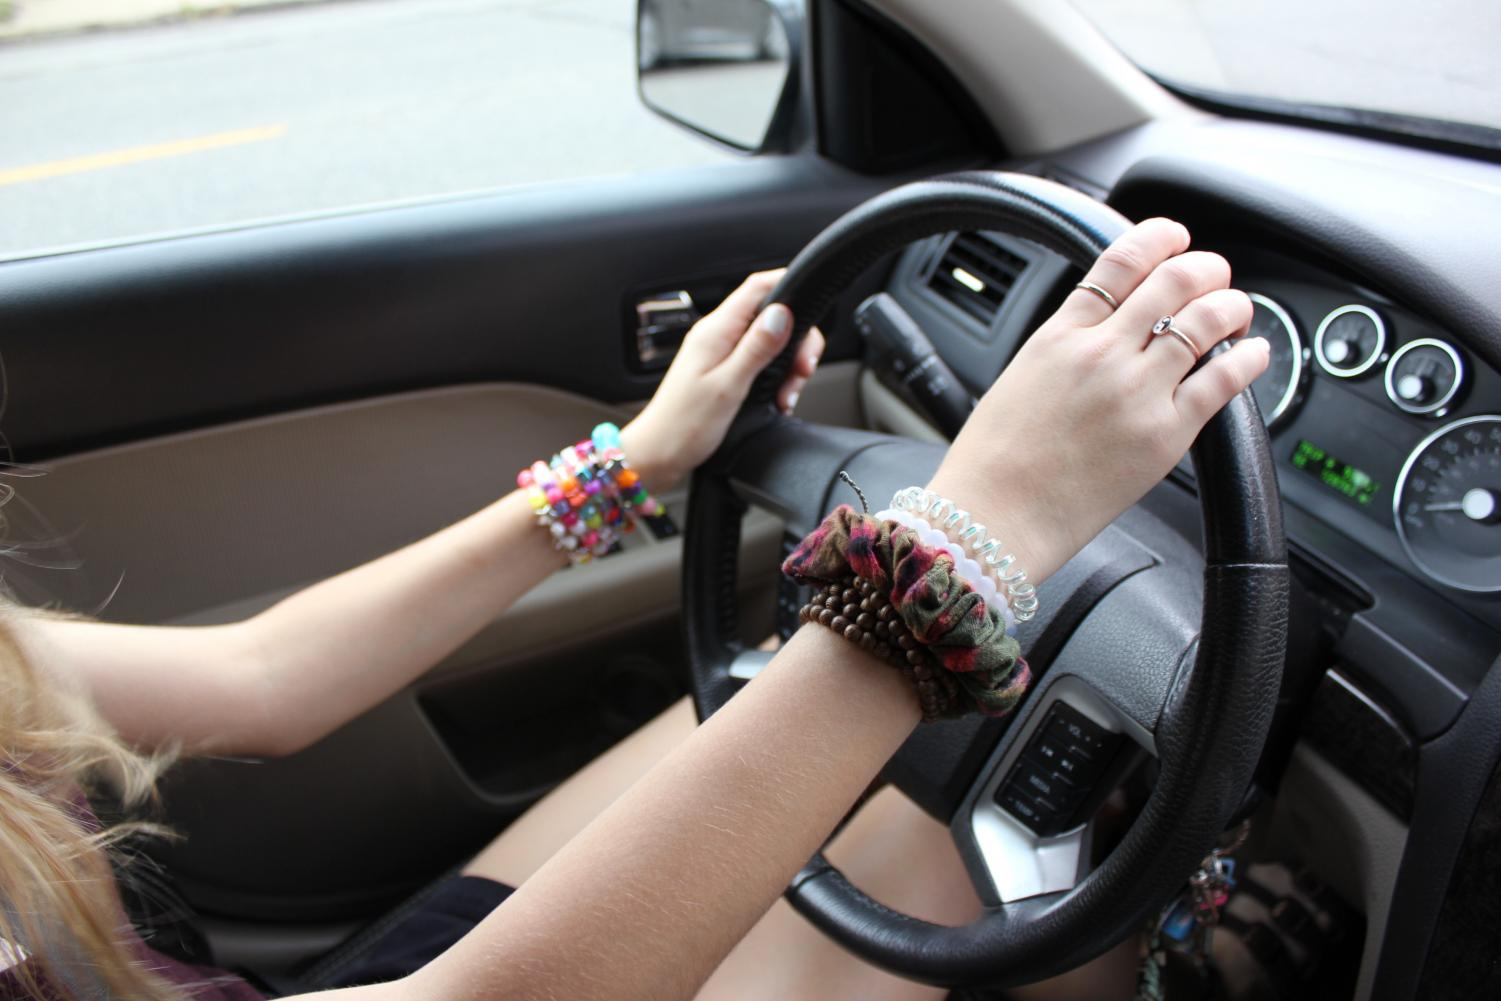 Danger lurks in the drivers seat: distracted driving